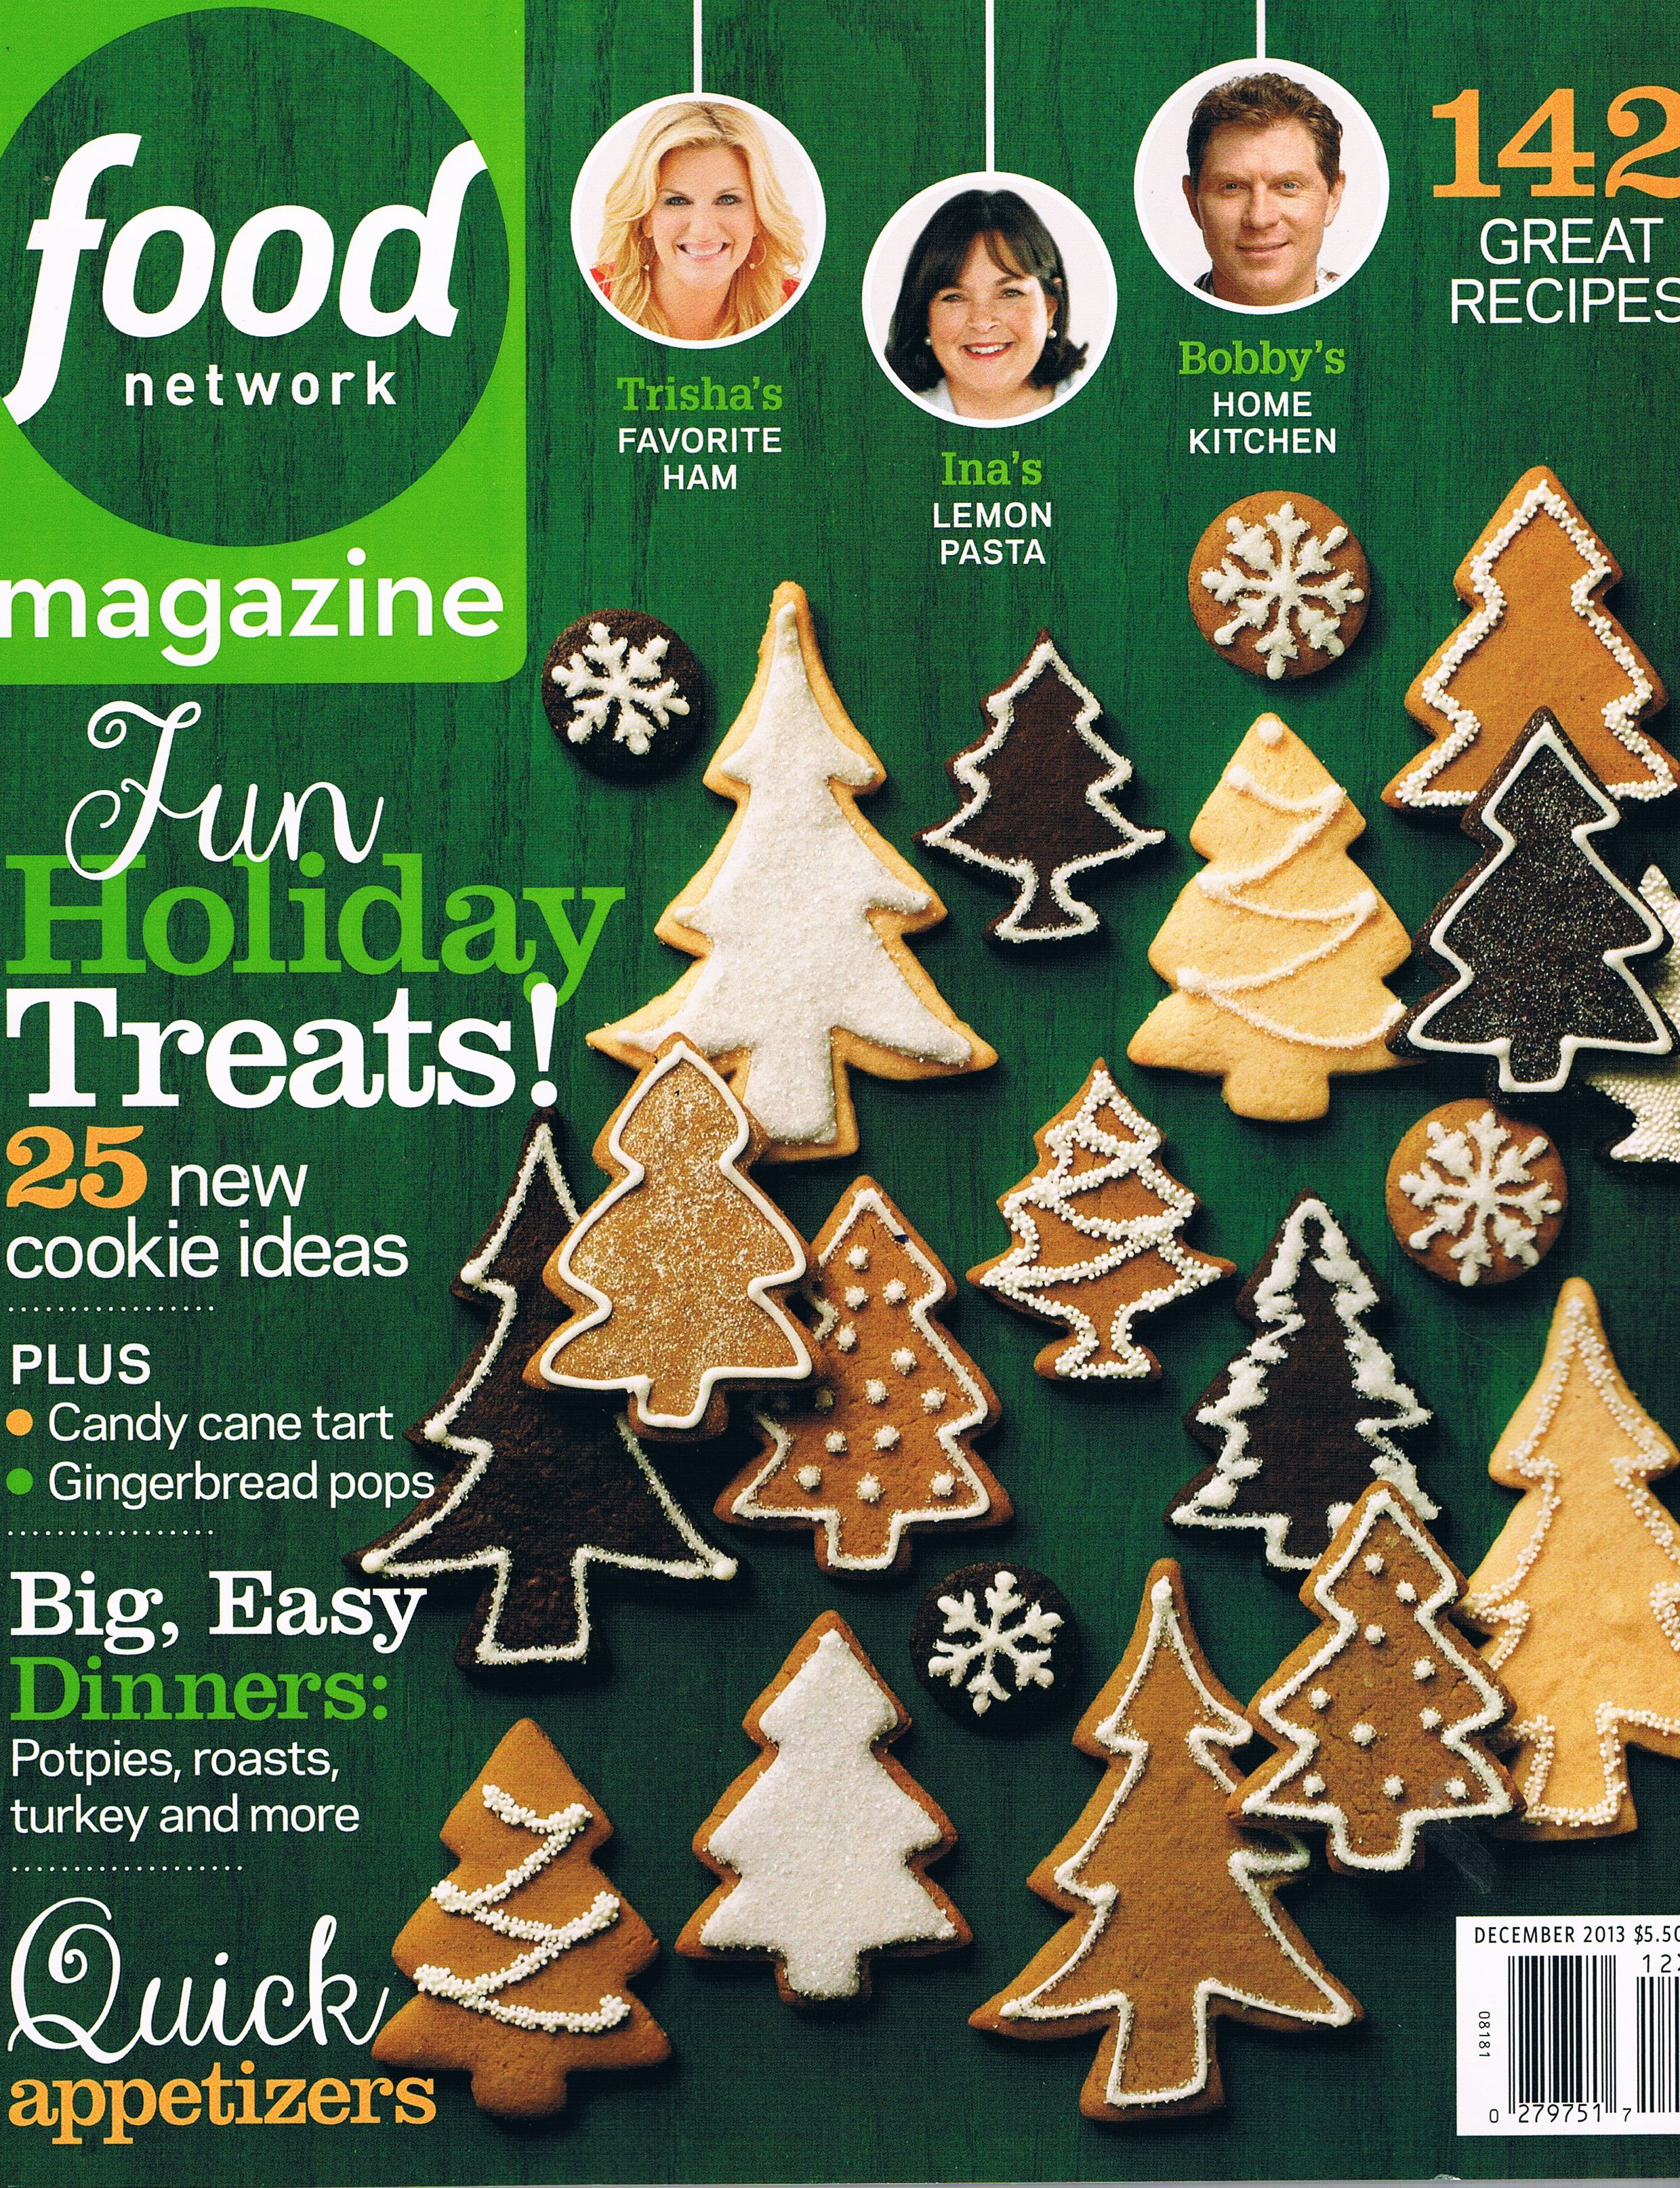 Food network magazine christmas google search noel front mag 25 new cookie recipes food network magazine december 2013 volume 6 number 10 forumfinder Gallery